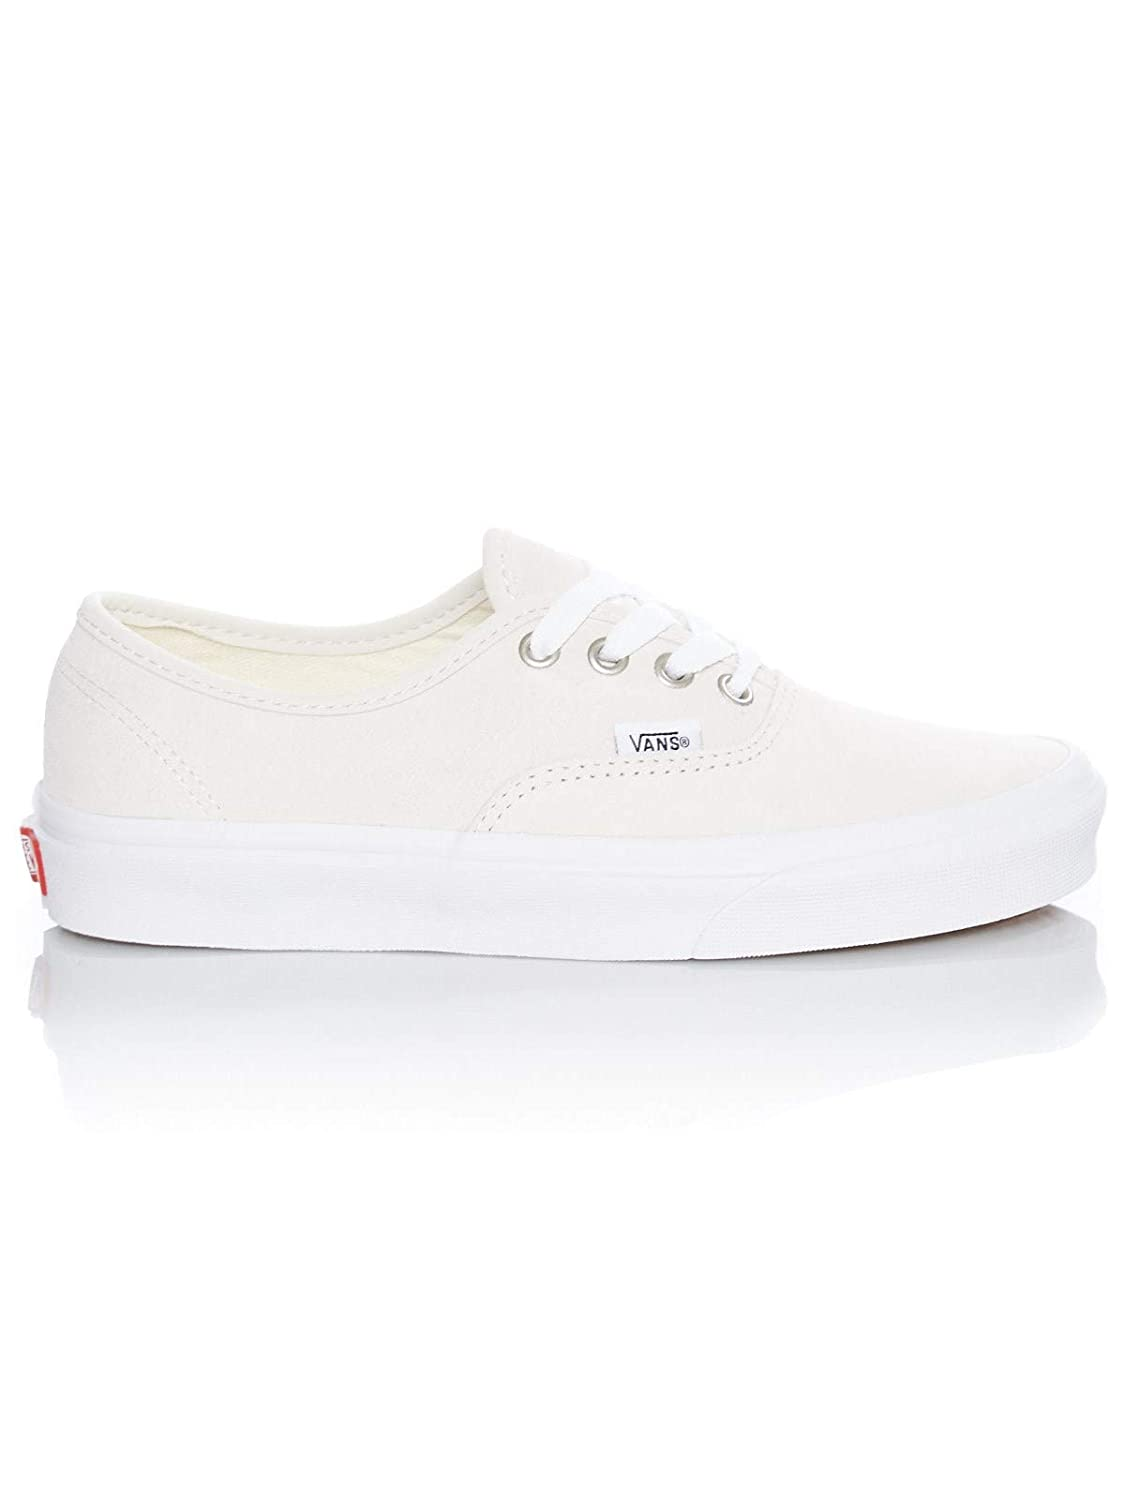 193eee81032a Vans Pig Suede Moonbeam-True White Authentic Womens Low Top Shoe   Amazon.co.uk  Shoes   Bags